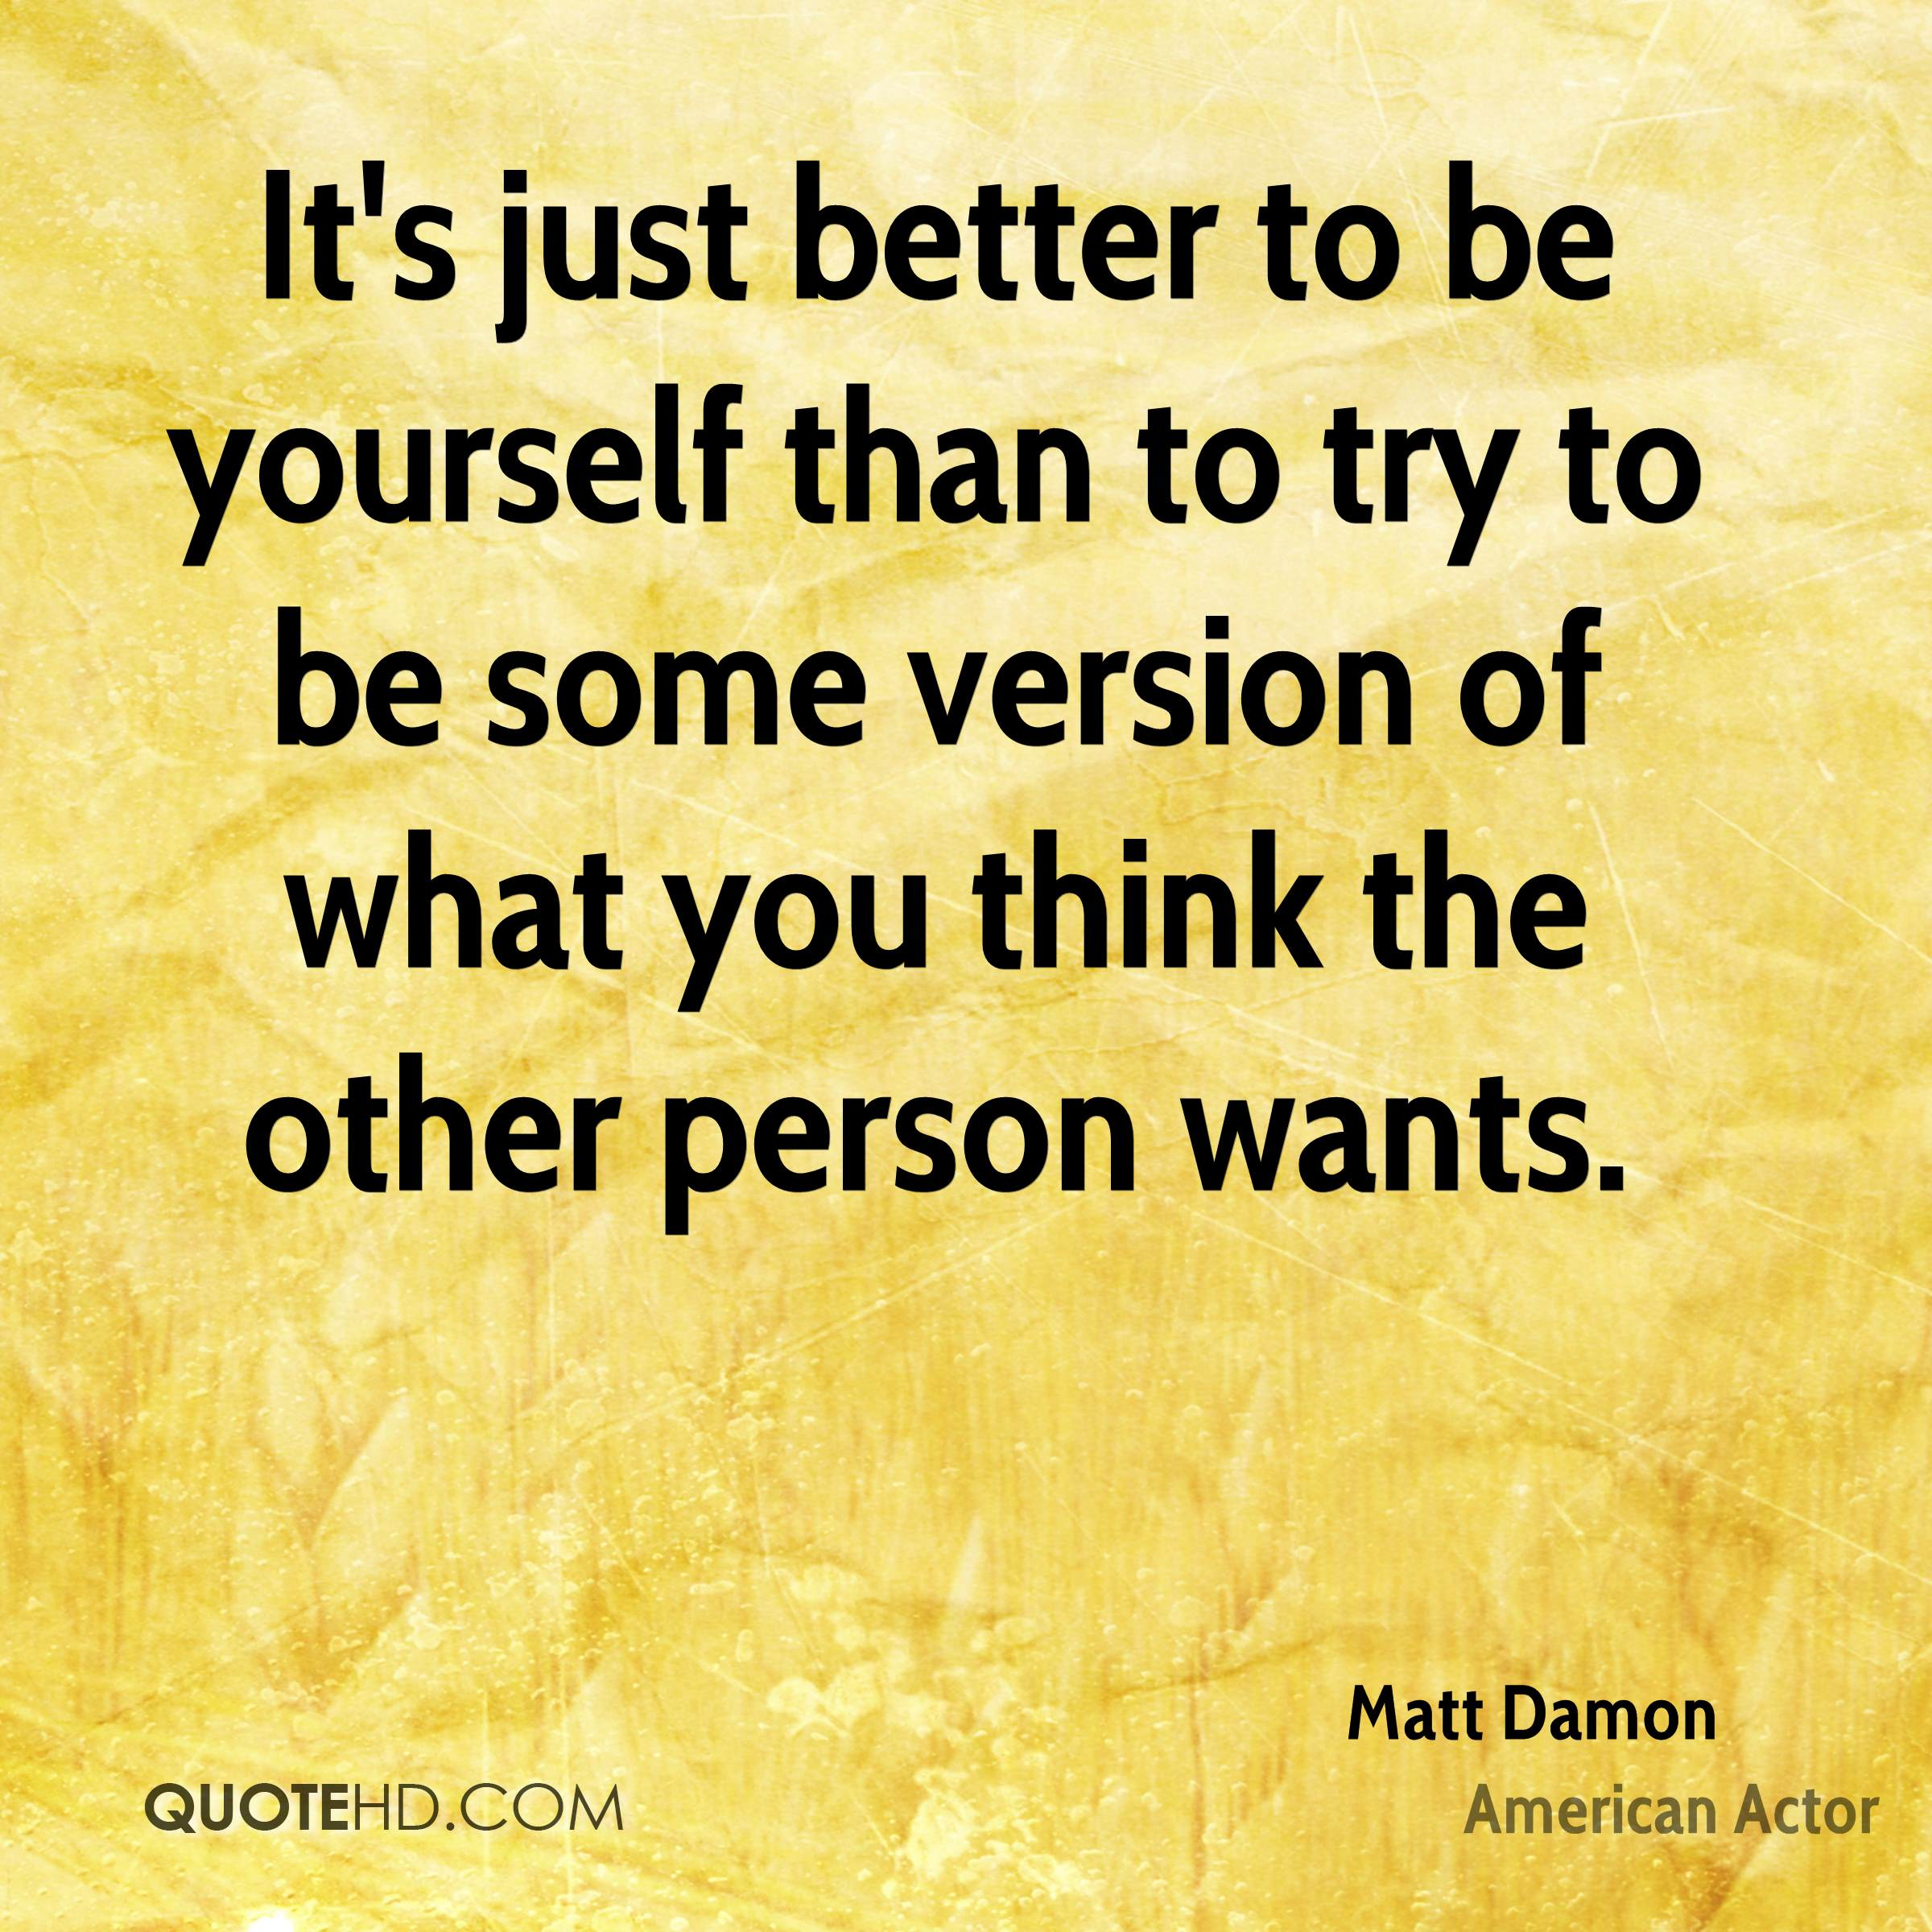 It's just better to be yourself than to try to be some version of what you think the other person wants.